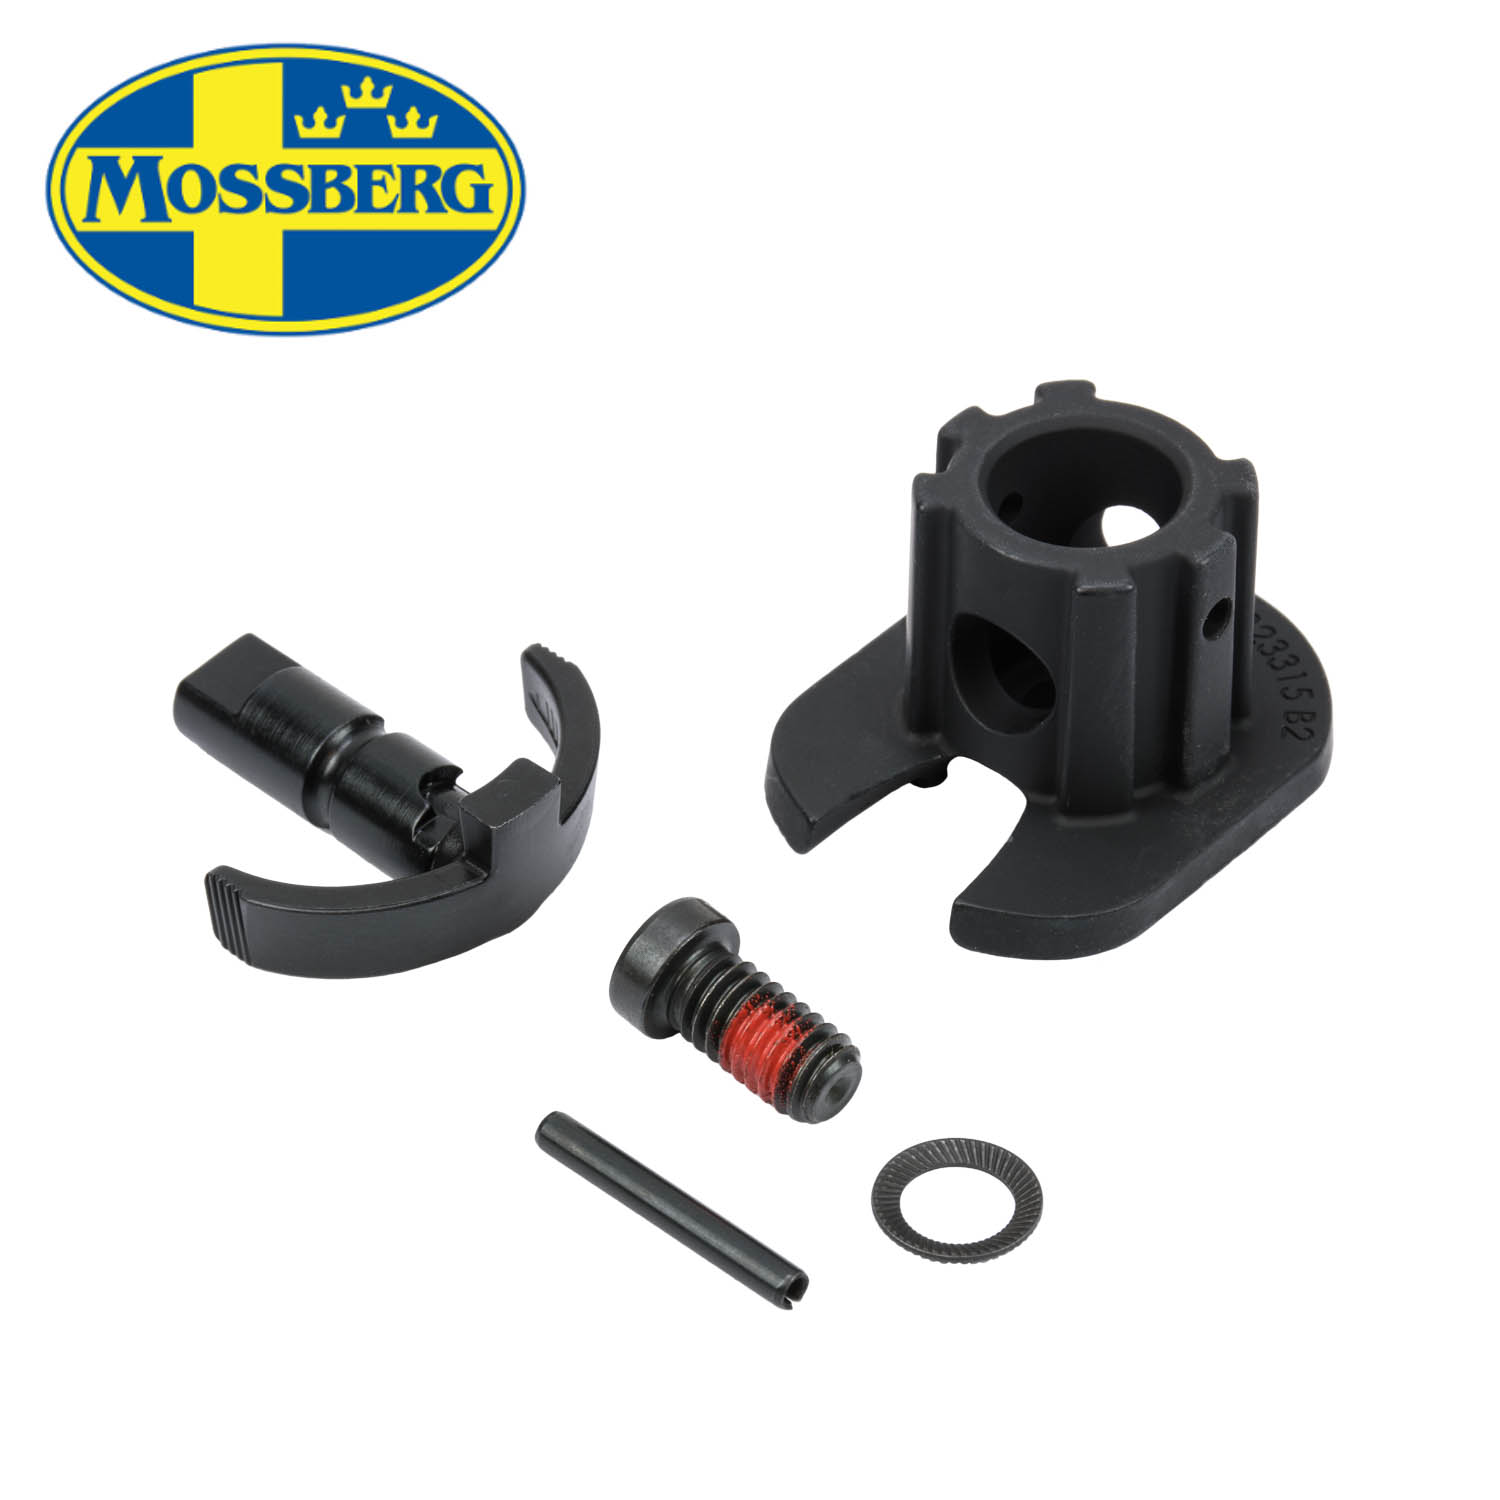 Mossberg 500 / 590 / Maverick 88 FLEX Conversion Kit Stock Adapter, 12ga :  Midwest Gun Works